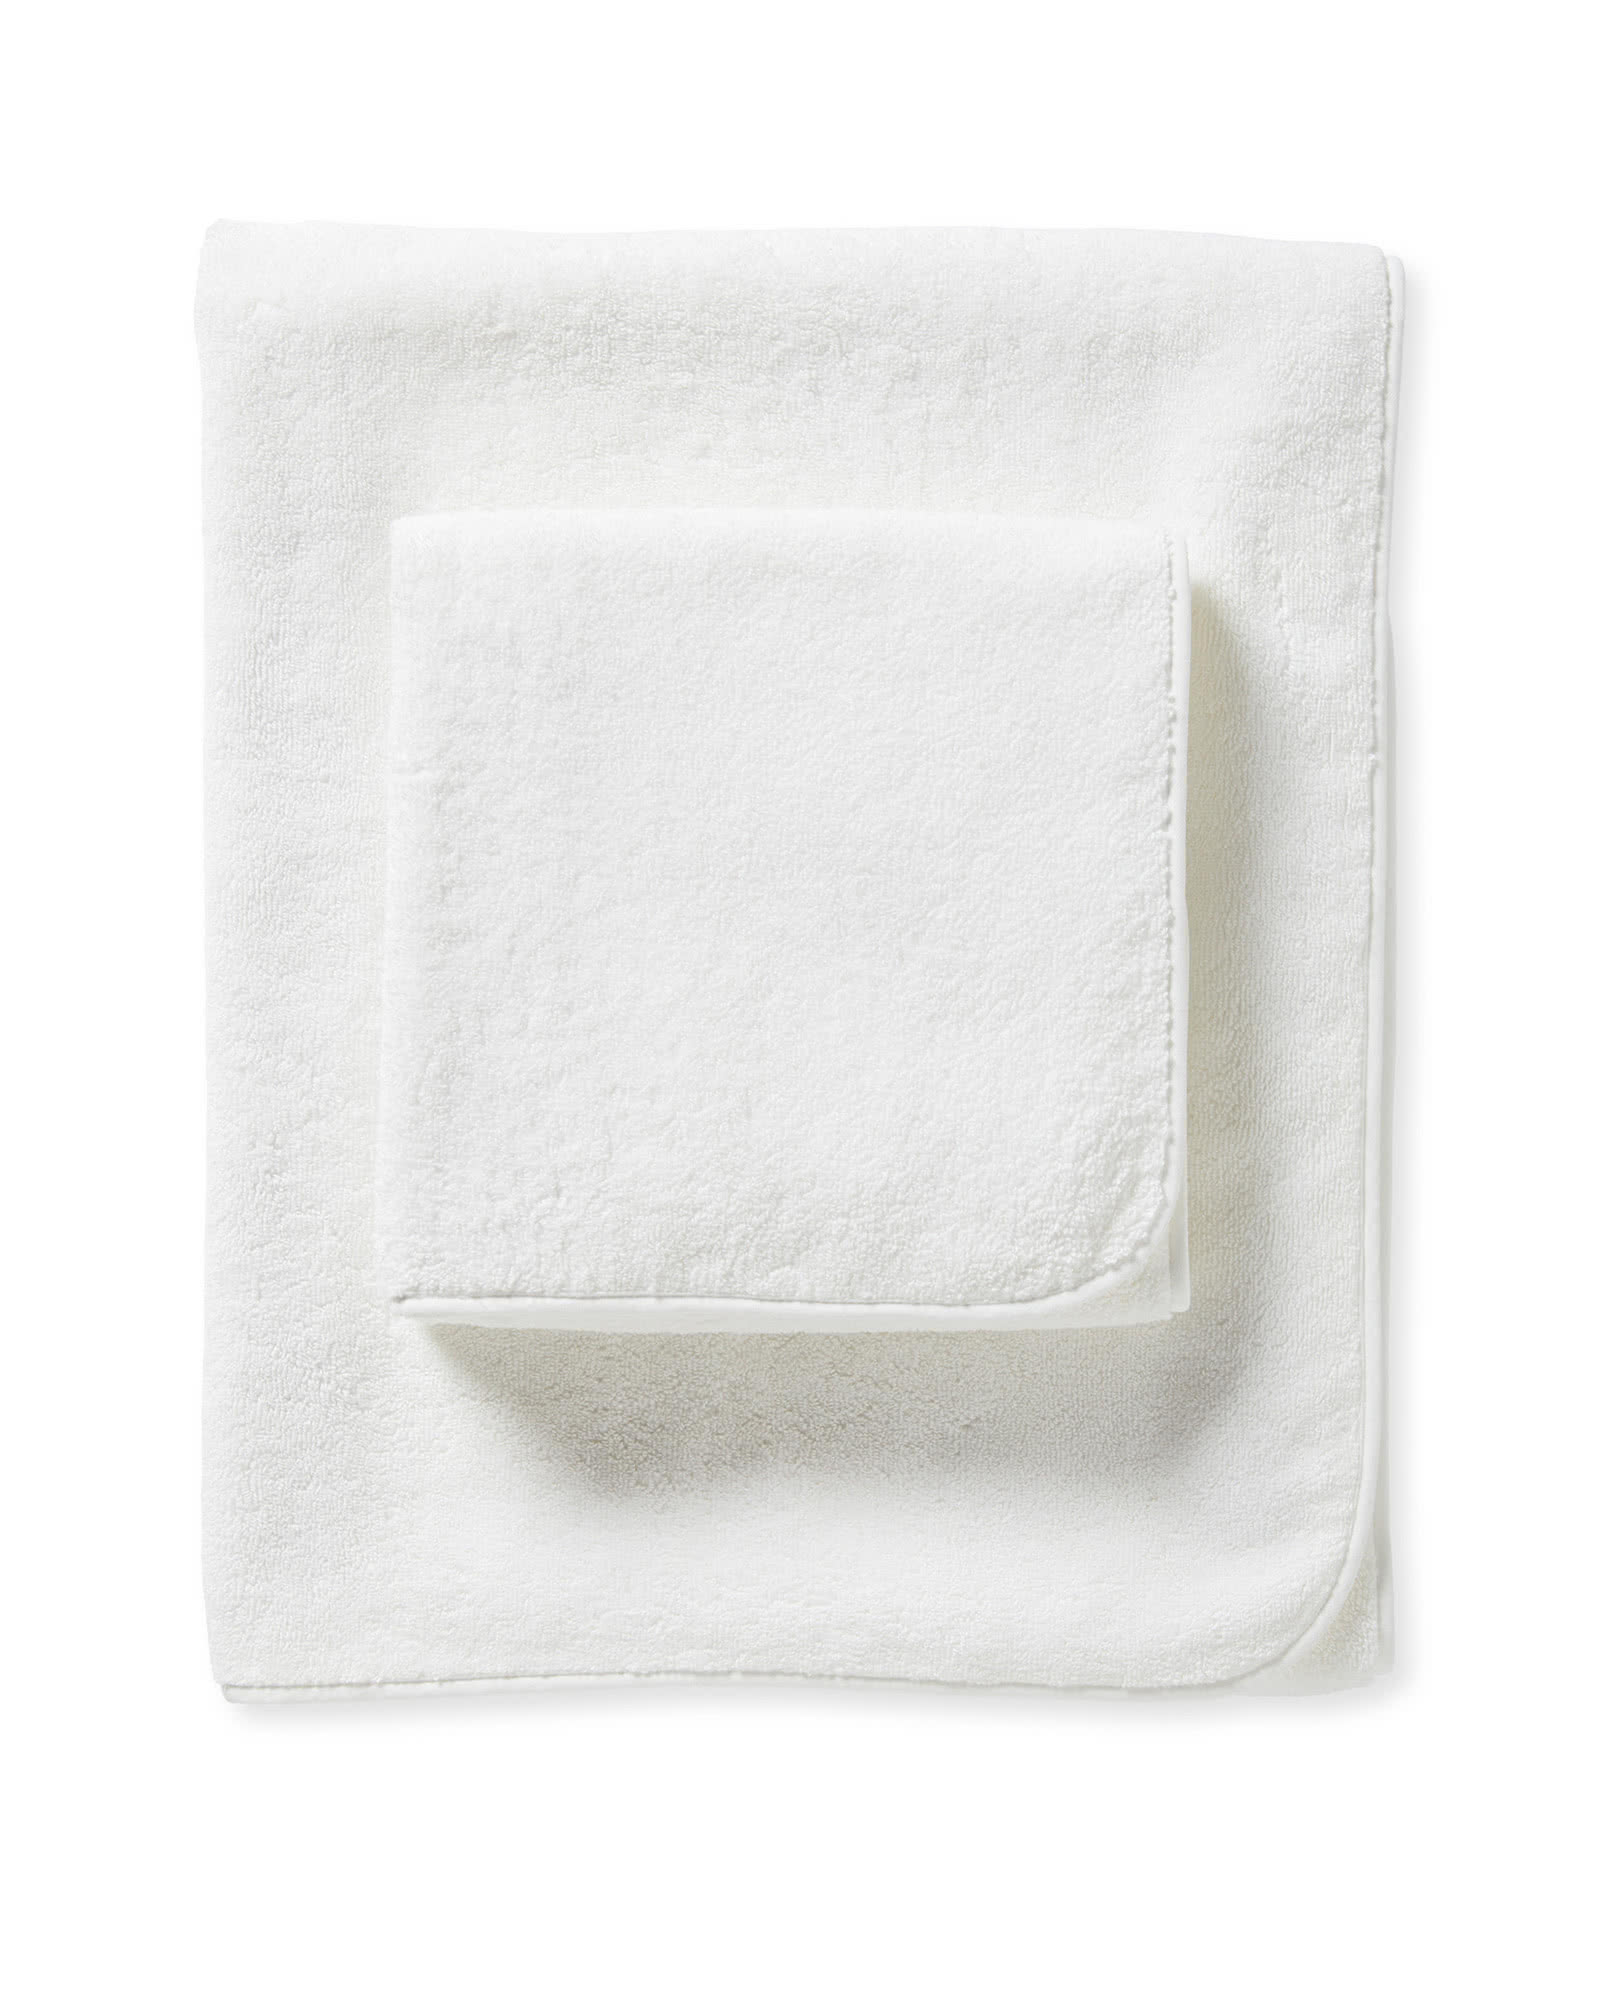 Banded Border Bath Collection, White